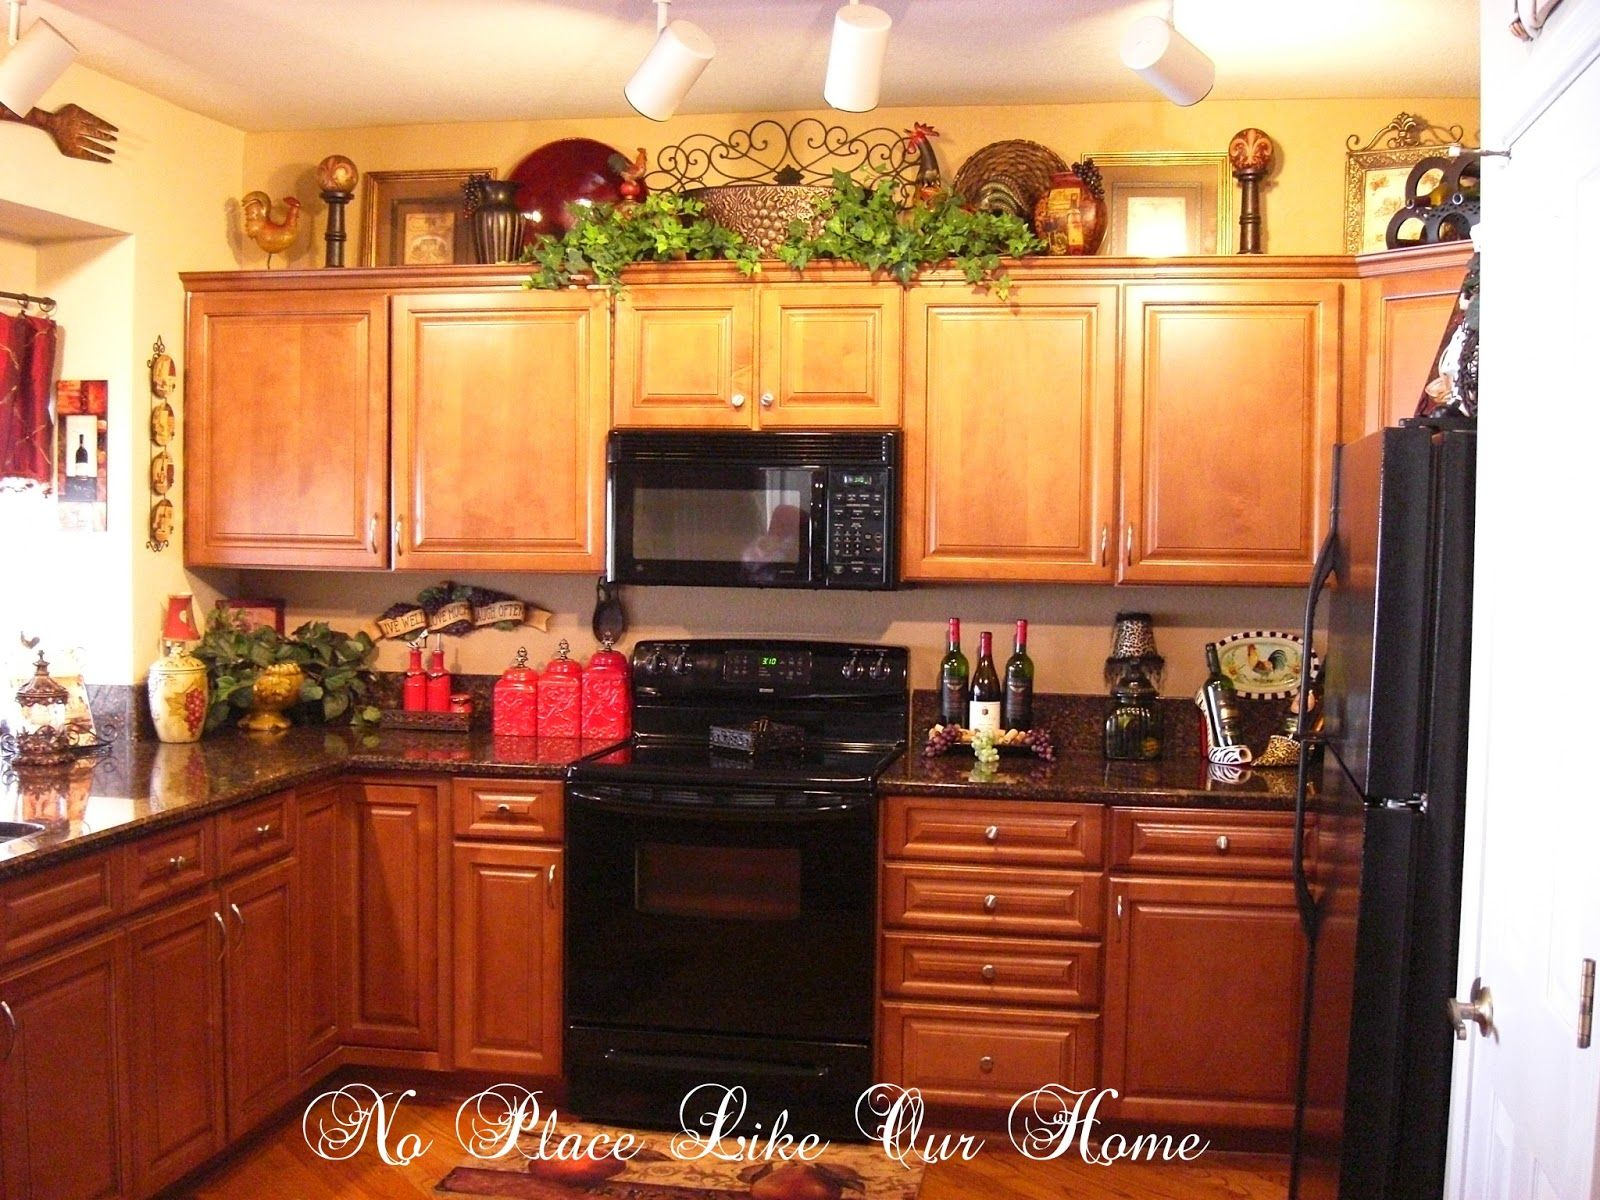 Vine for Cabinets Wine Theme Ideas for My Kitchen Home Decor. Ideas For Kitchens. Best 25 Small Kitchens Ideas Onsmall Kitchen. 25 Kitchen Design Software Onhouse